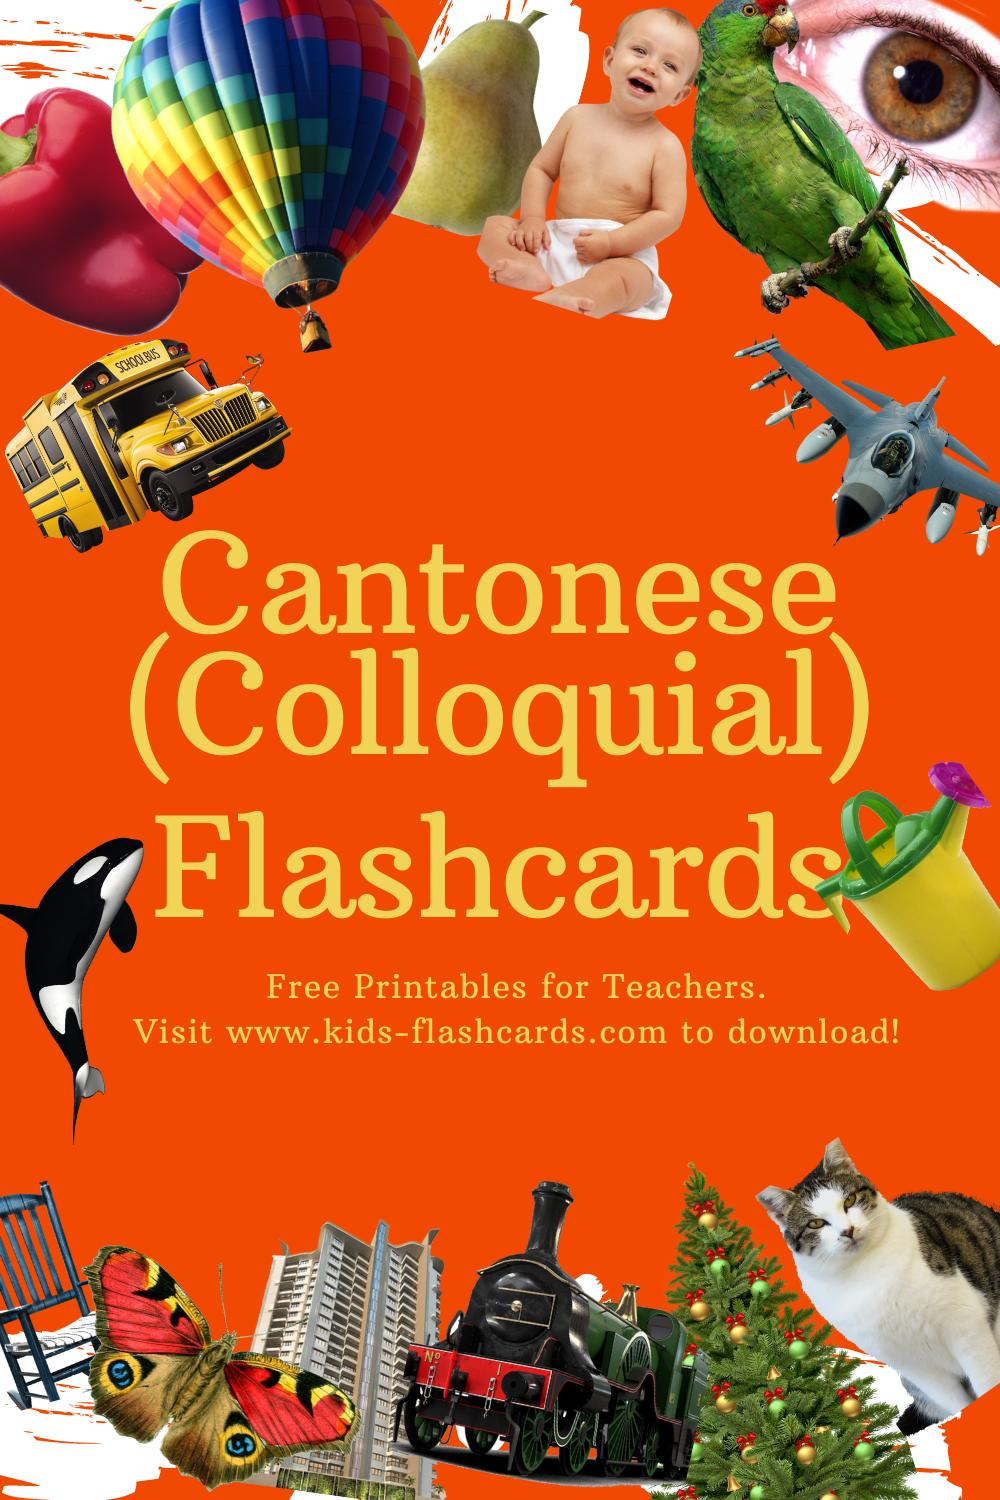 Worksheets to learn Cantonese(Colloquial) language